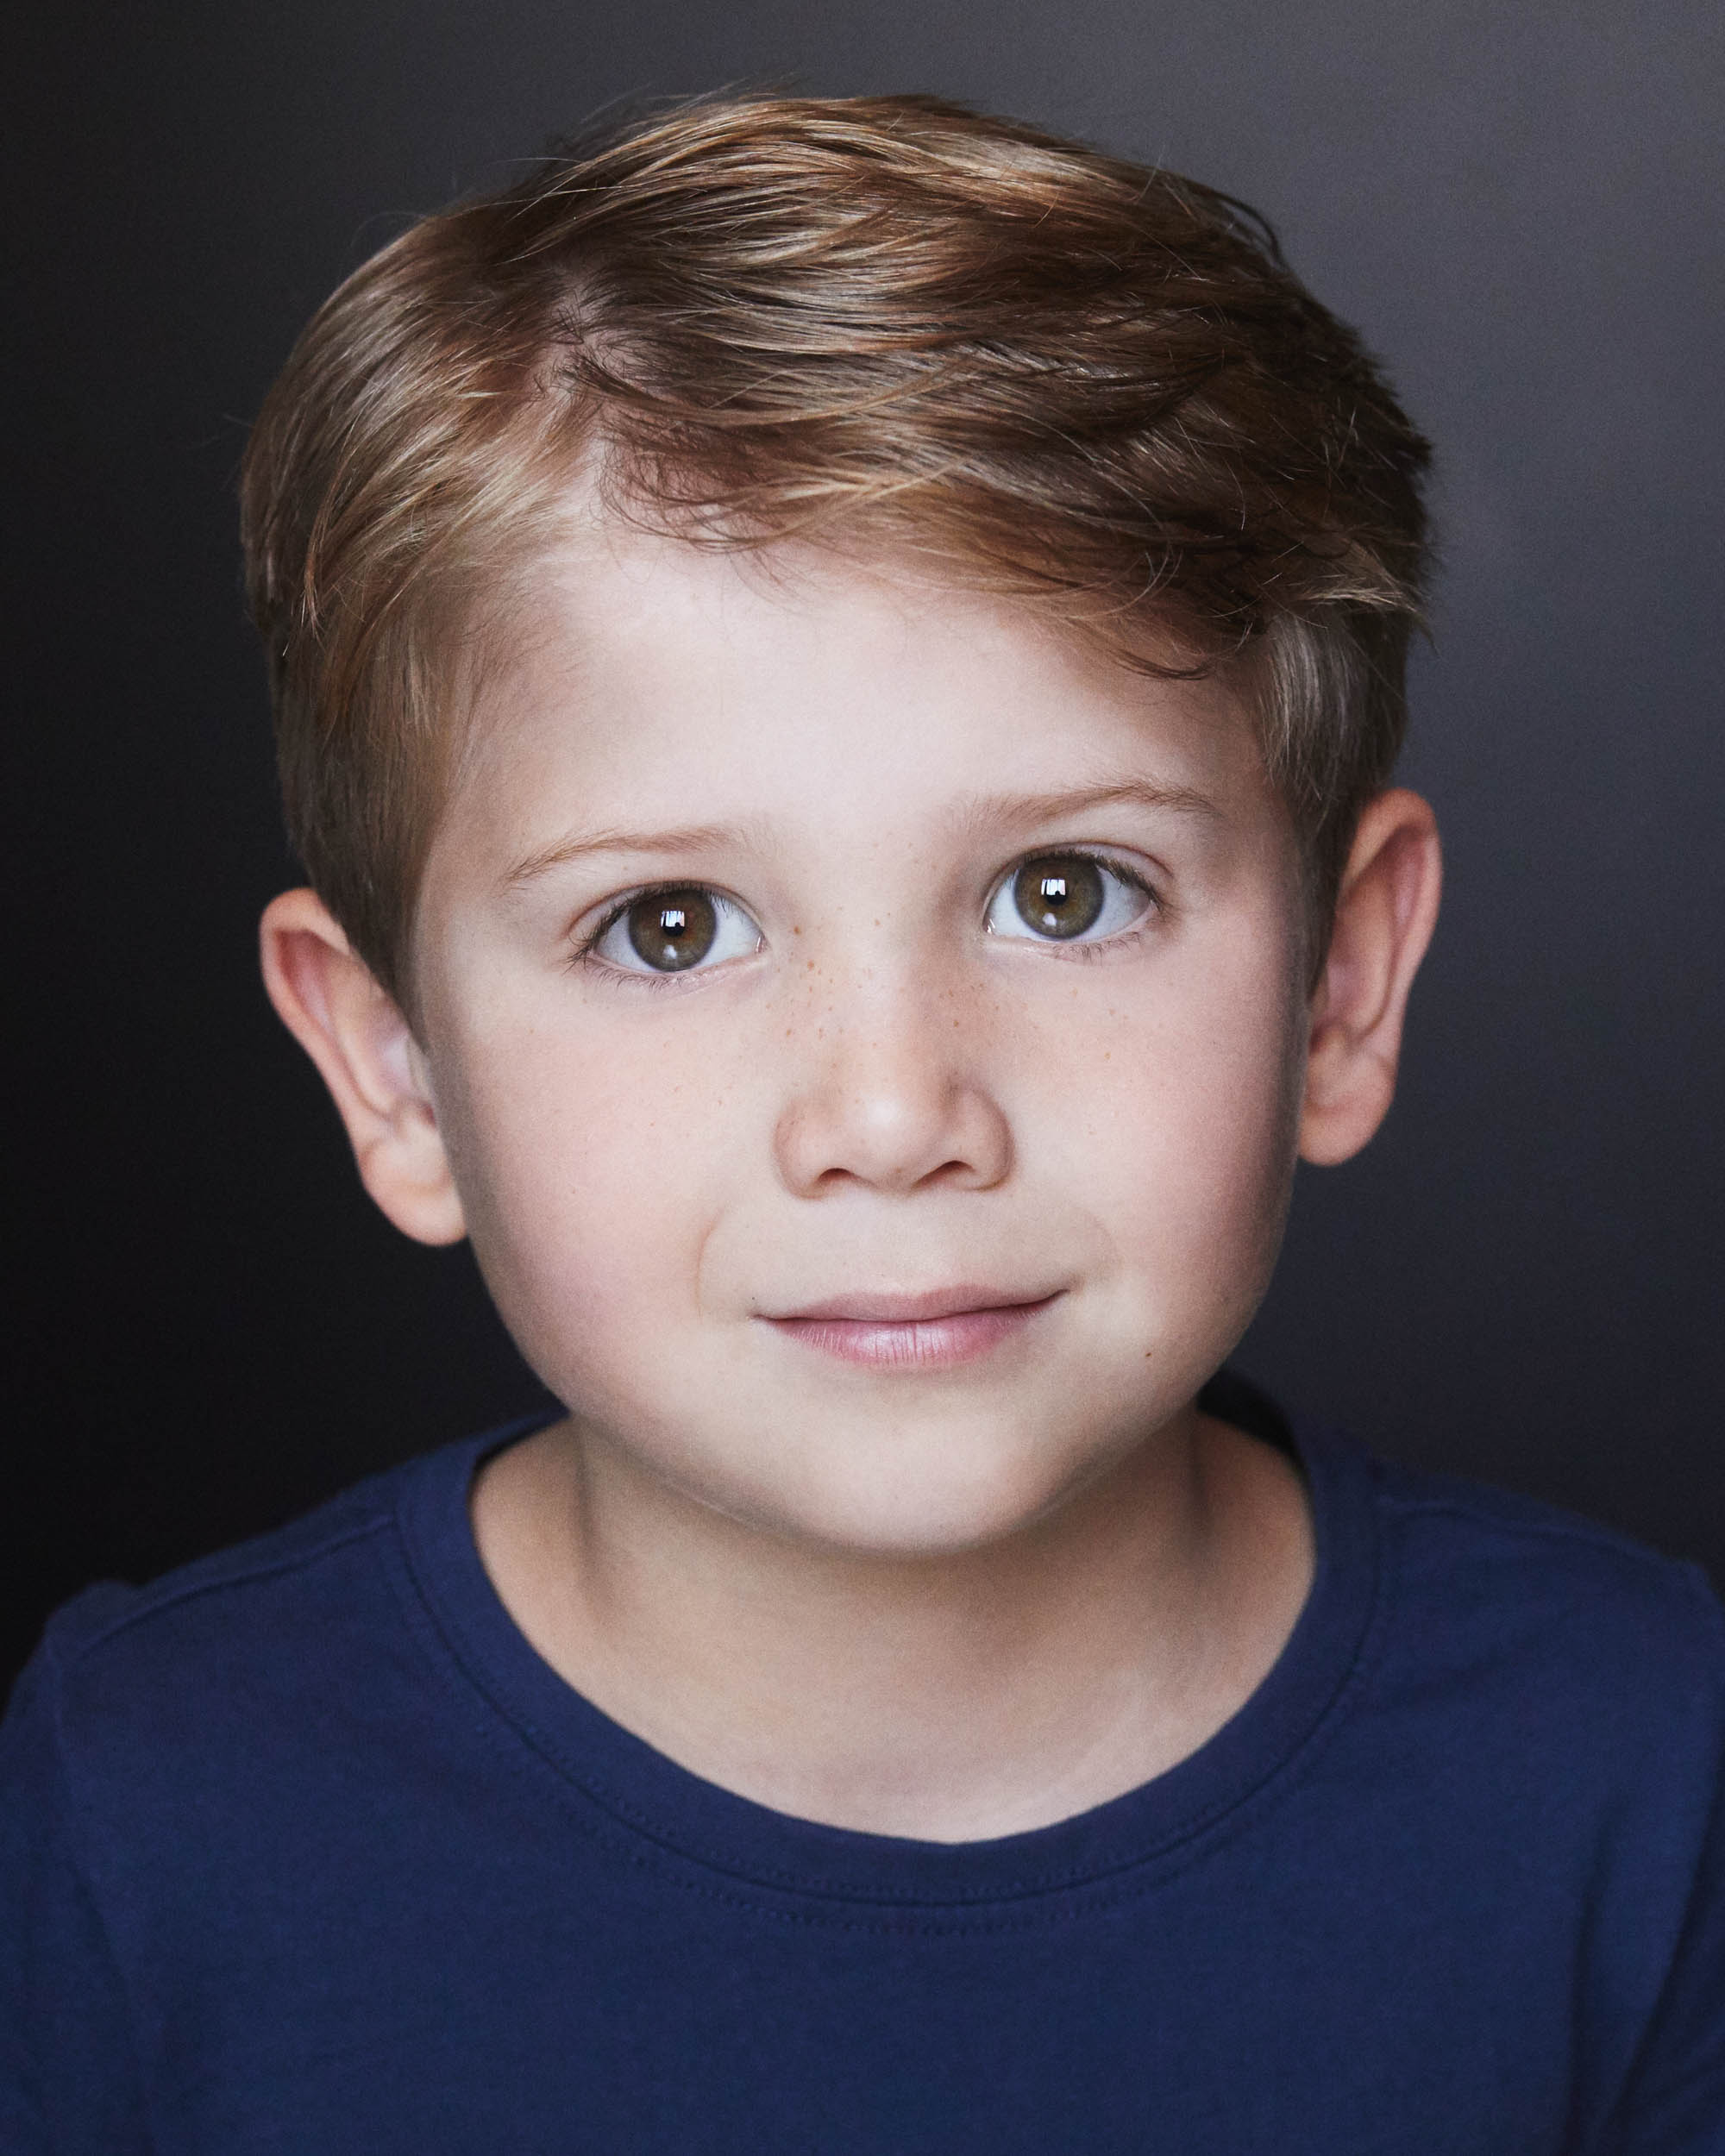 Childrens Portrait of Thomas taken by photographer Nick Walters.jpg